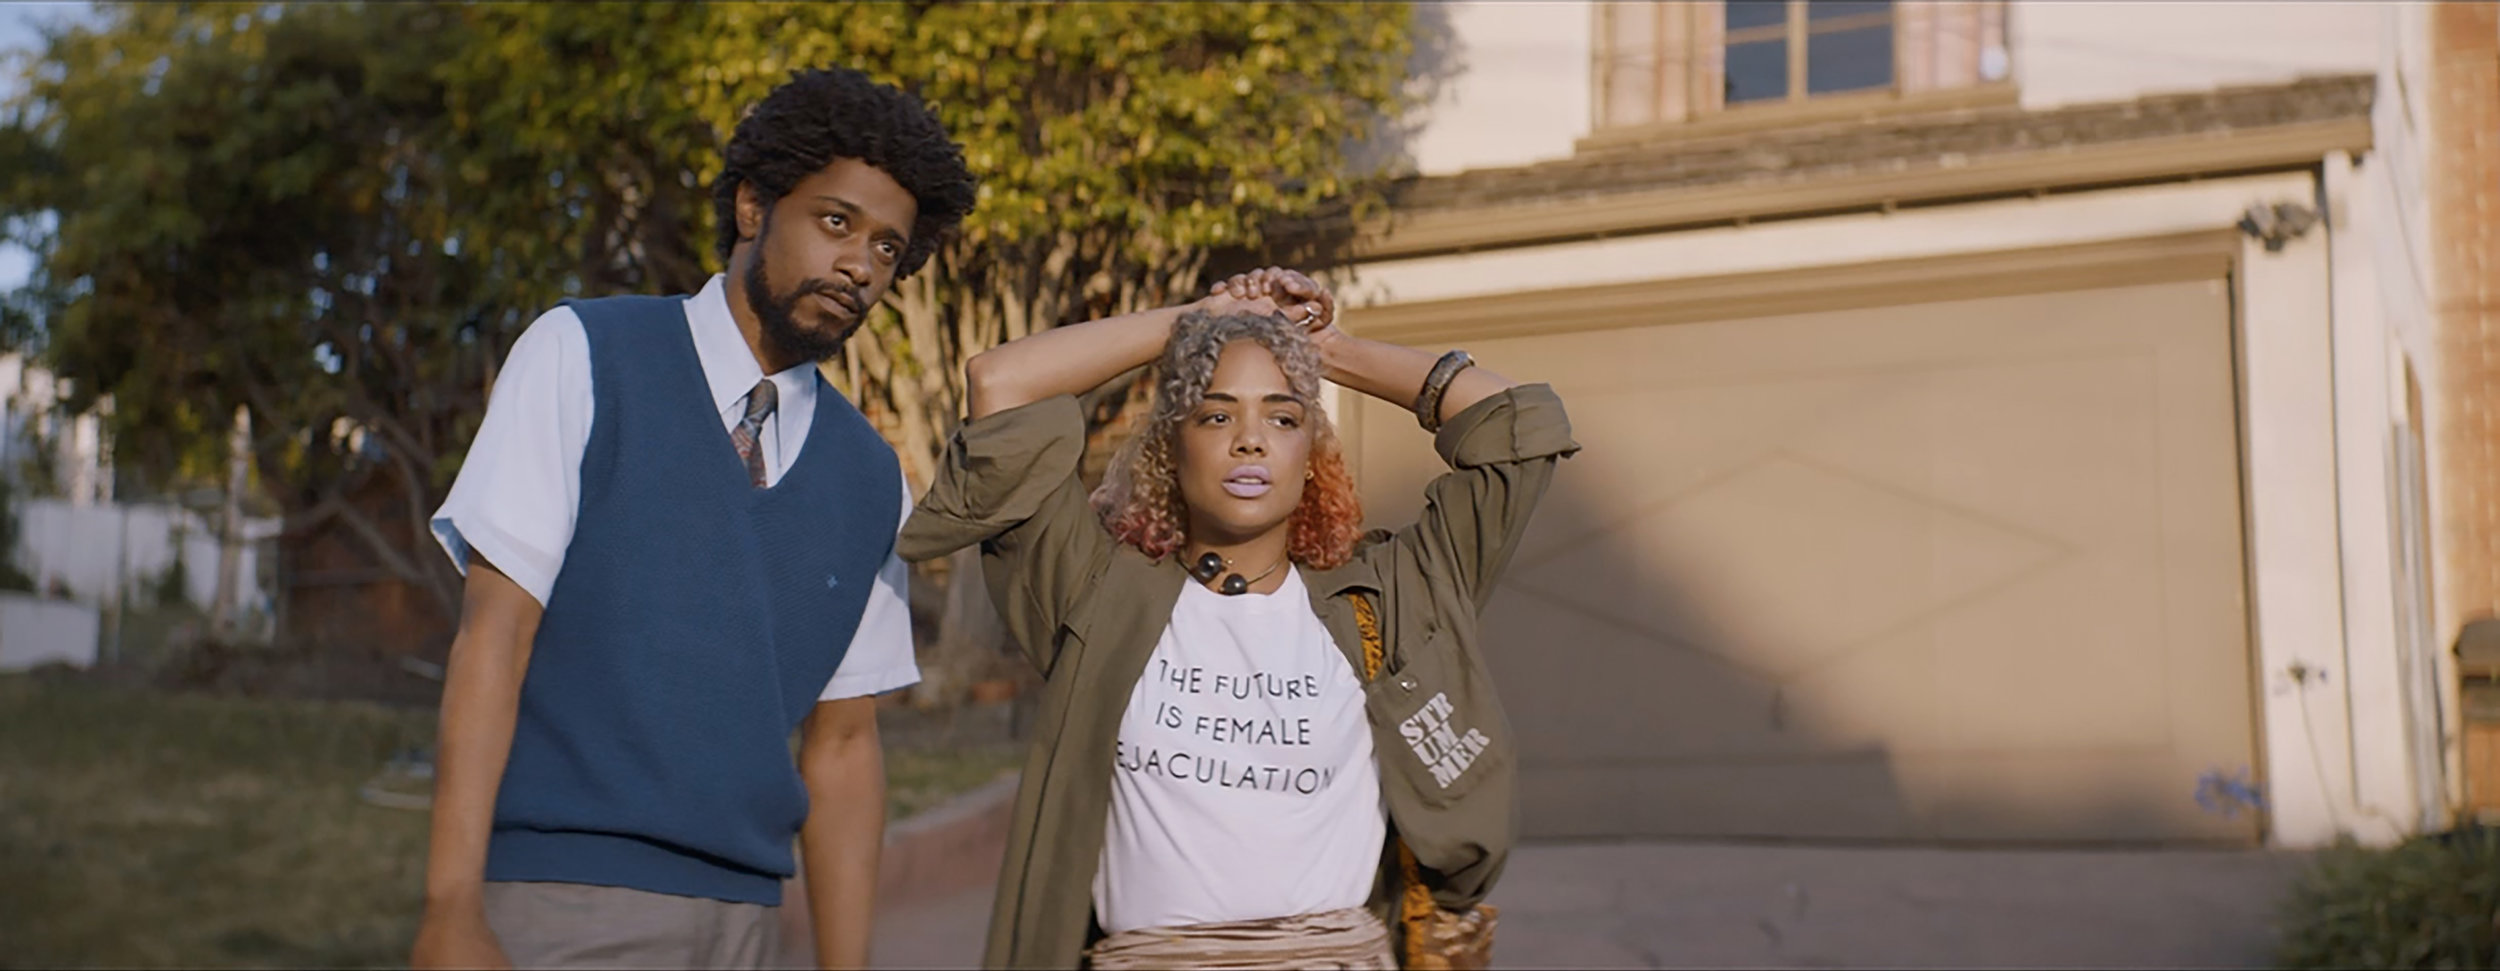 "Cassius Green (Lakeith Stanfield, left) and his artist girlfriend, Detroit (Tessa Thompson), navigate poverty, sudden wealth and racism in Boots Riley's satire ""Sorry to Bother You."" (Photo courtesy Annapurna Pictures)"